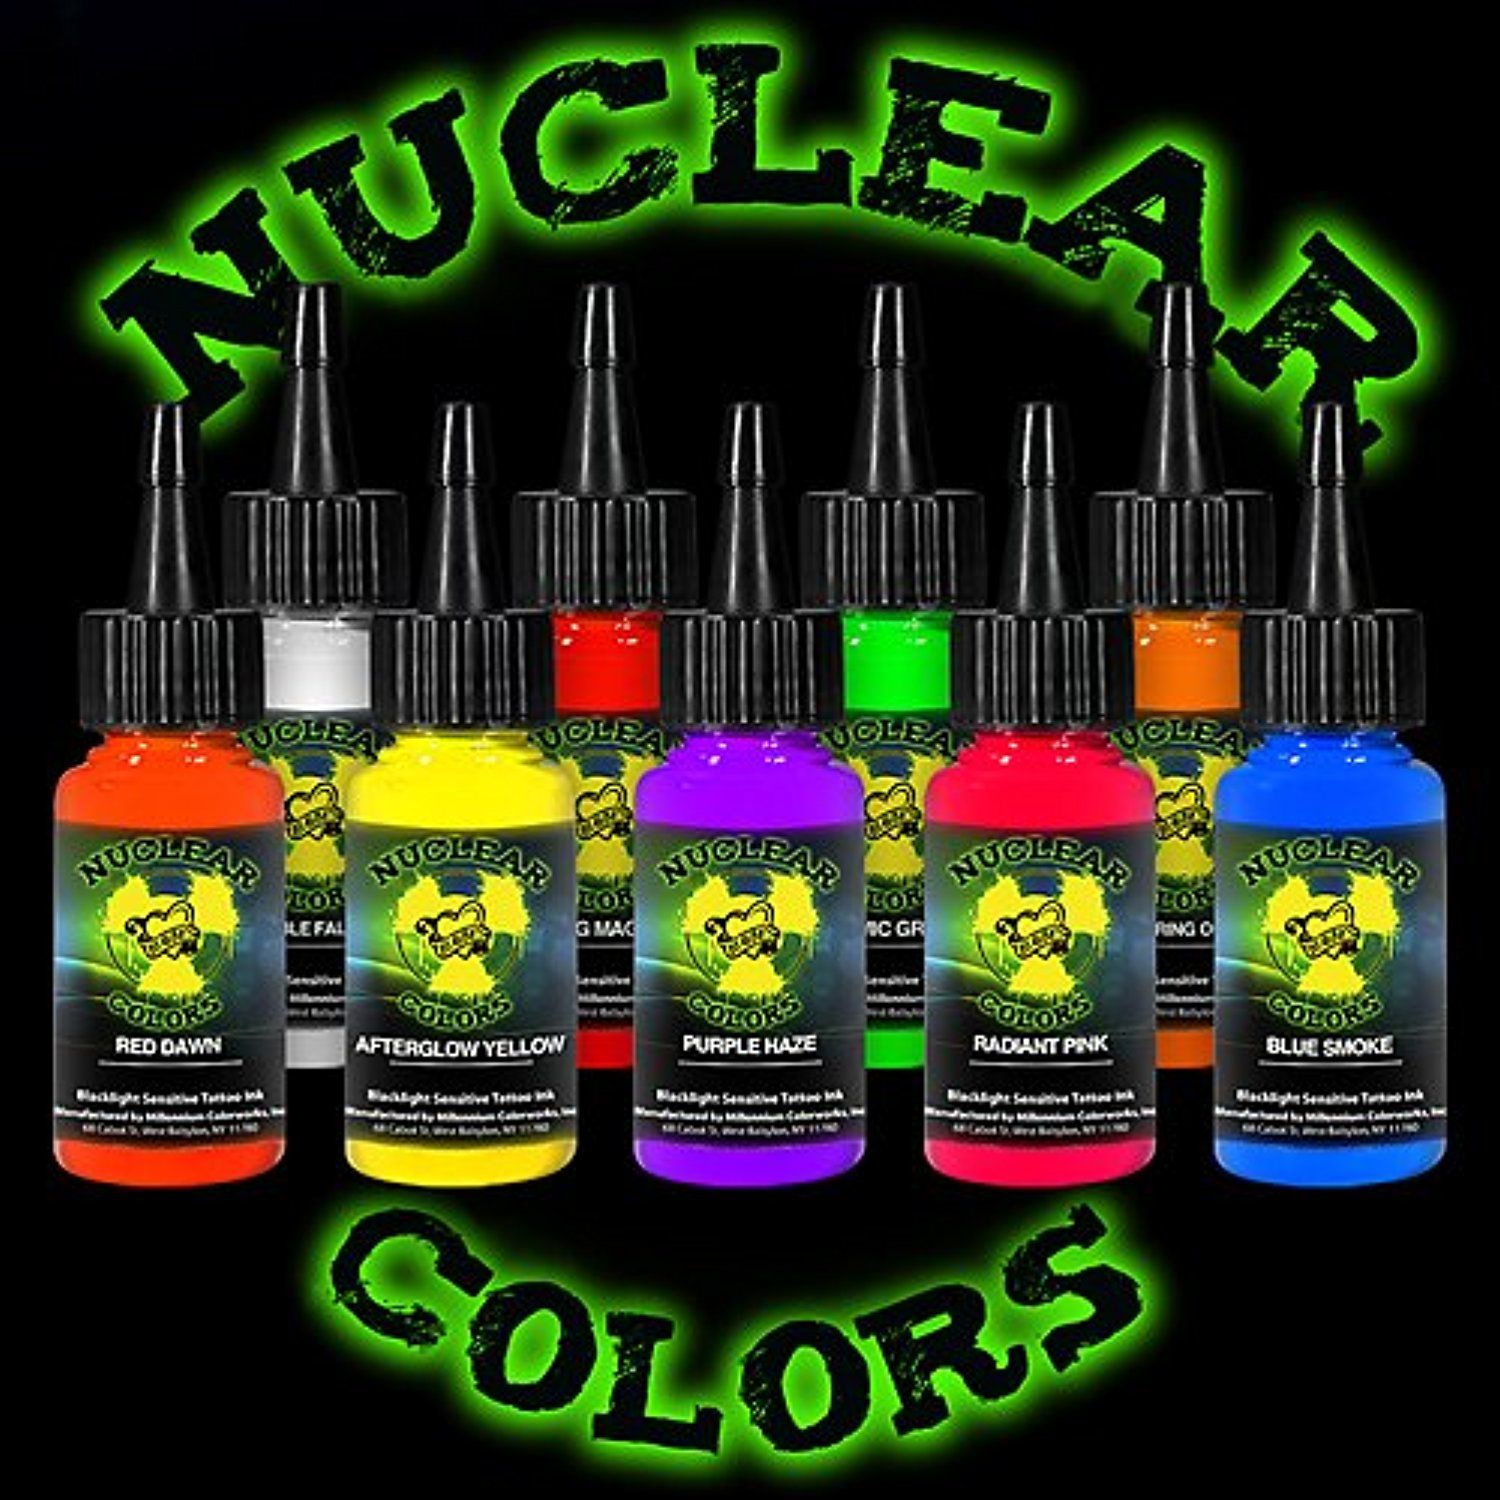 Tattoo Ink Set Mom S Nuclear Uv Blacklight Colors 9 Primary 1 2oz Read More Reviews Of The Product By Visiting The L Uv Tattoo Ink Tattoo Best Tattoo Ink